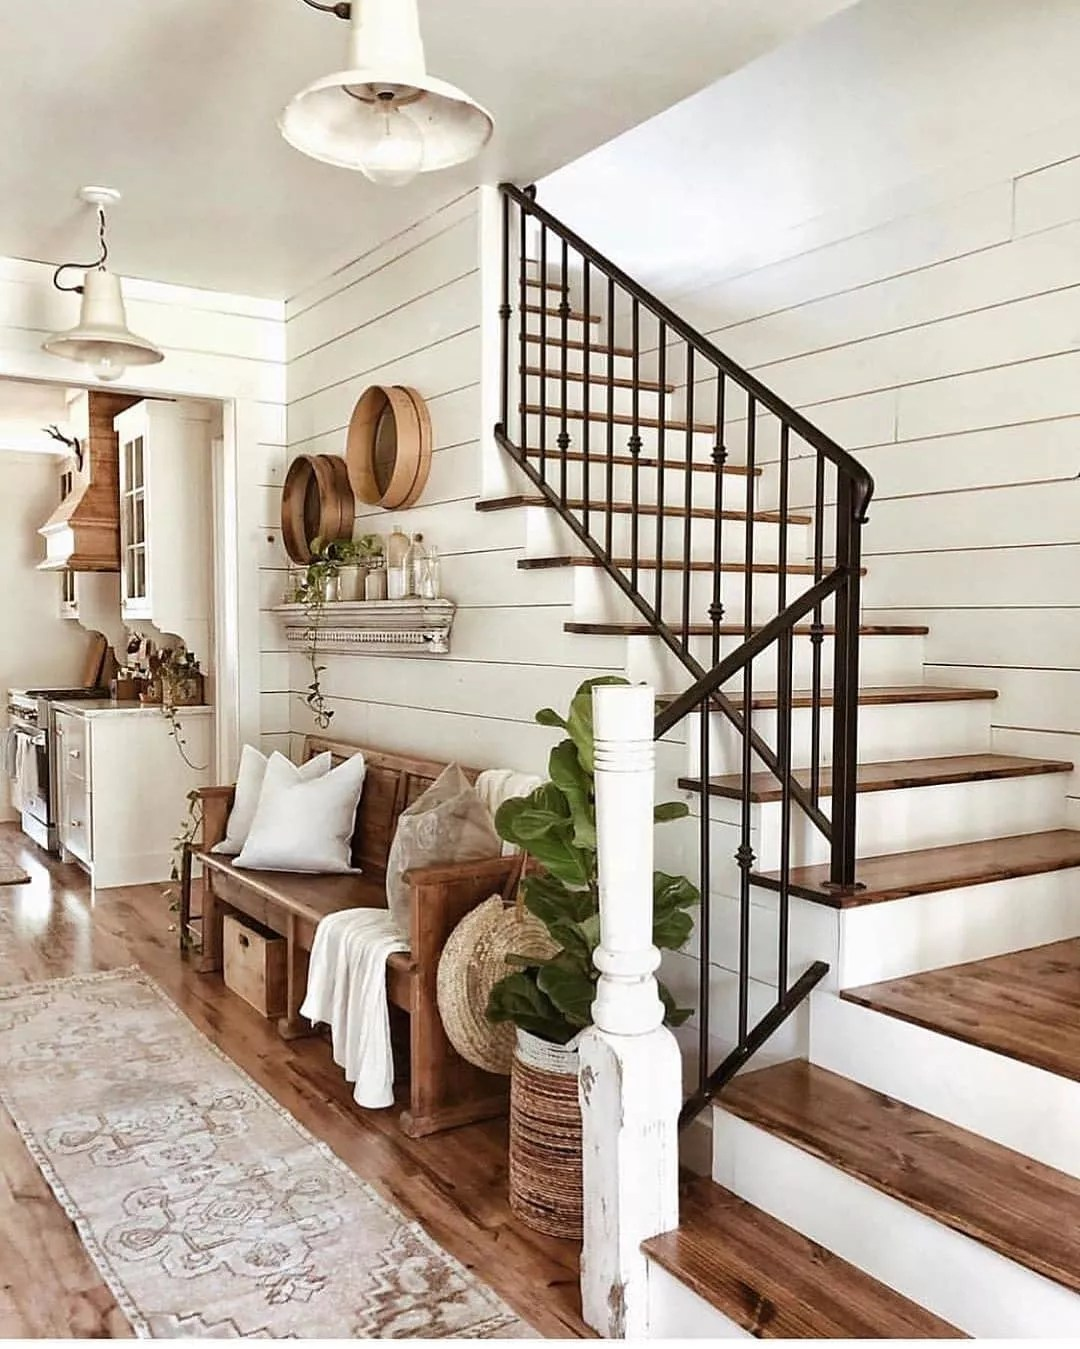 Entryway decorated in Modern Farmhouse with all white walls. Photo by Instagram user @whitetailfarmhouse